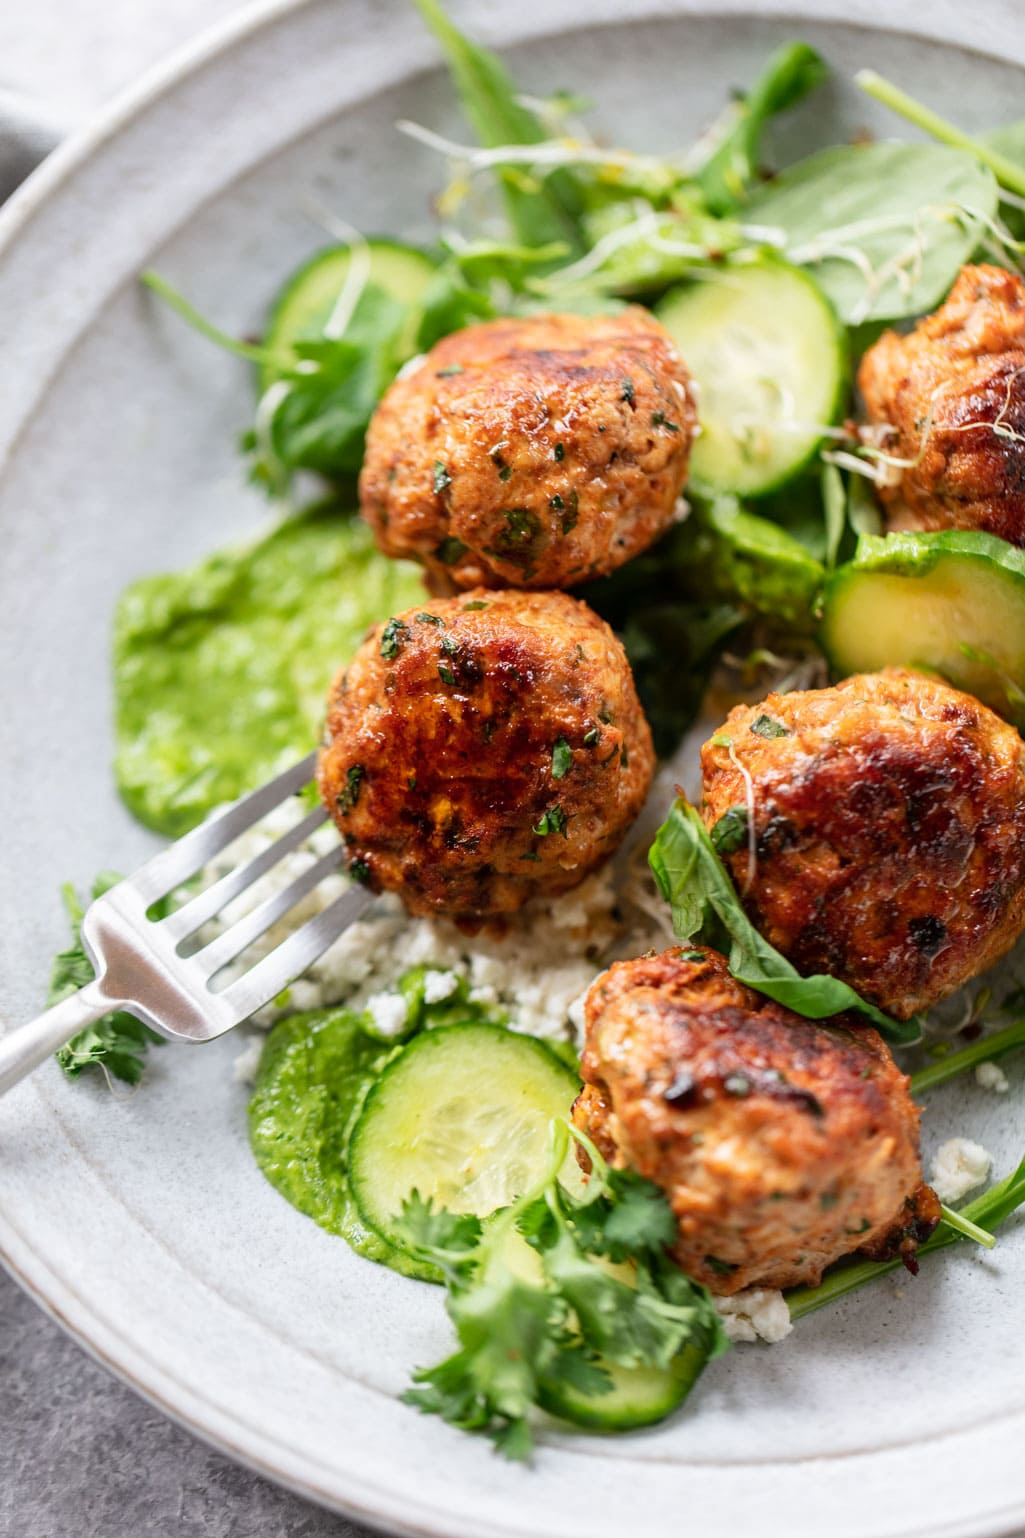 Healthy Turkey Meatballs (Gluten-Free)